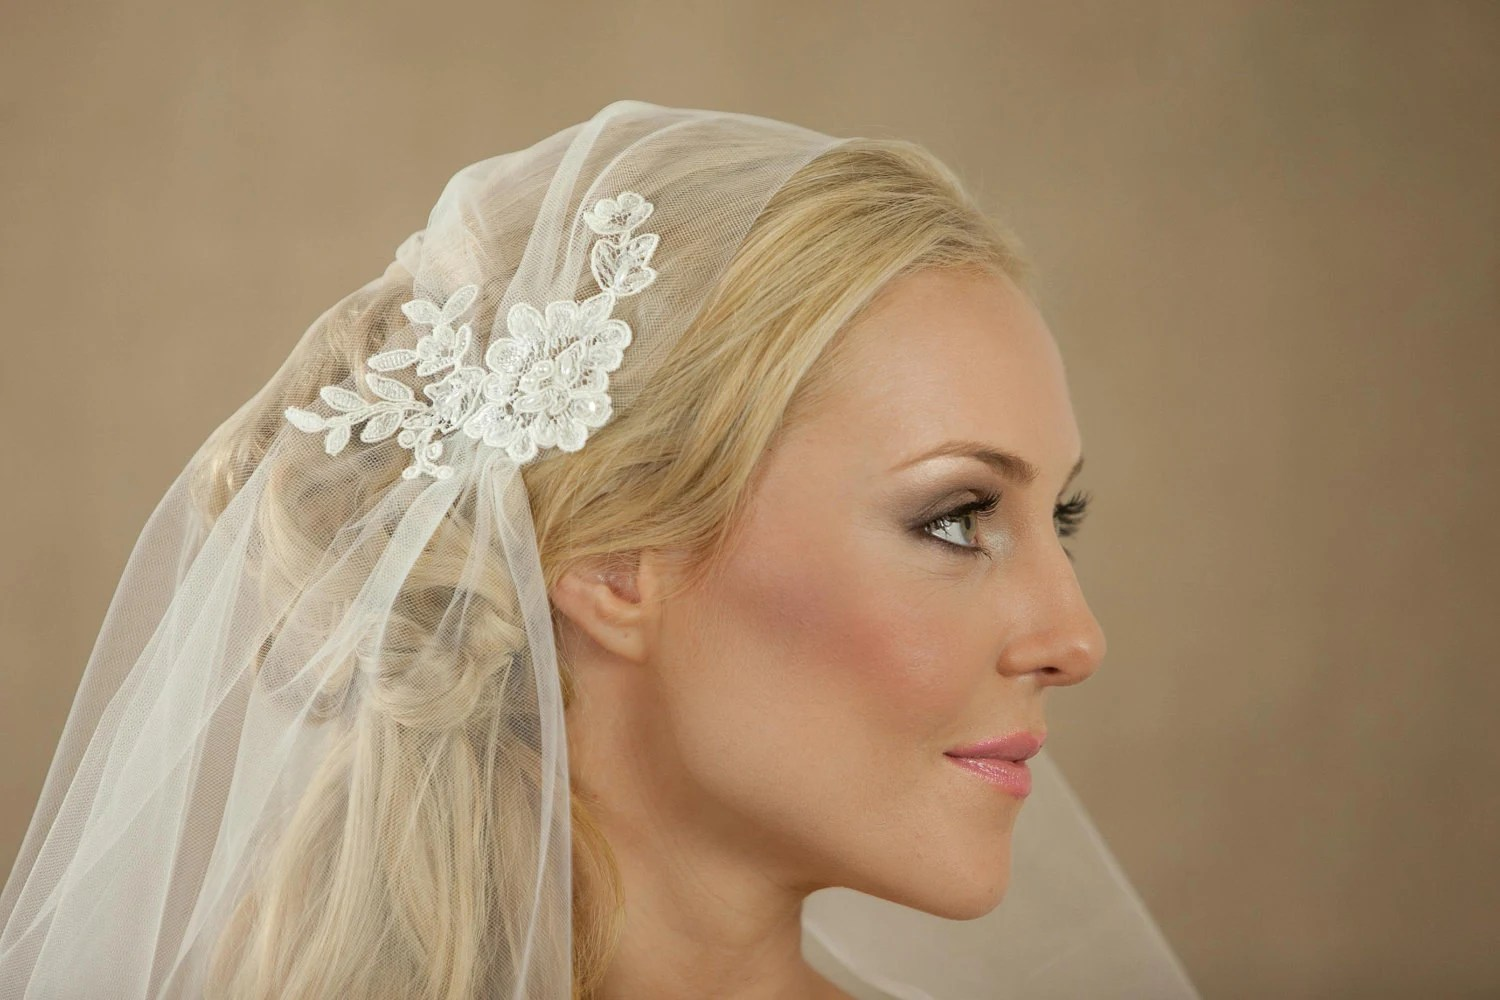 NEW 34 Inch Rosa Lace Bridal Cap Wedding Veil